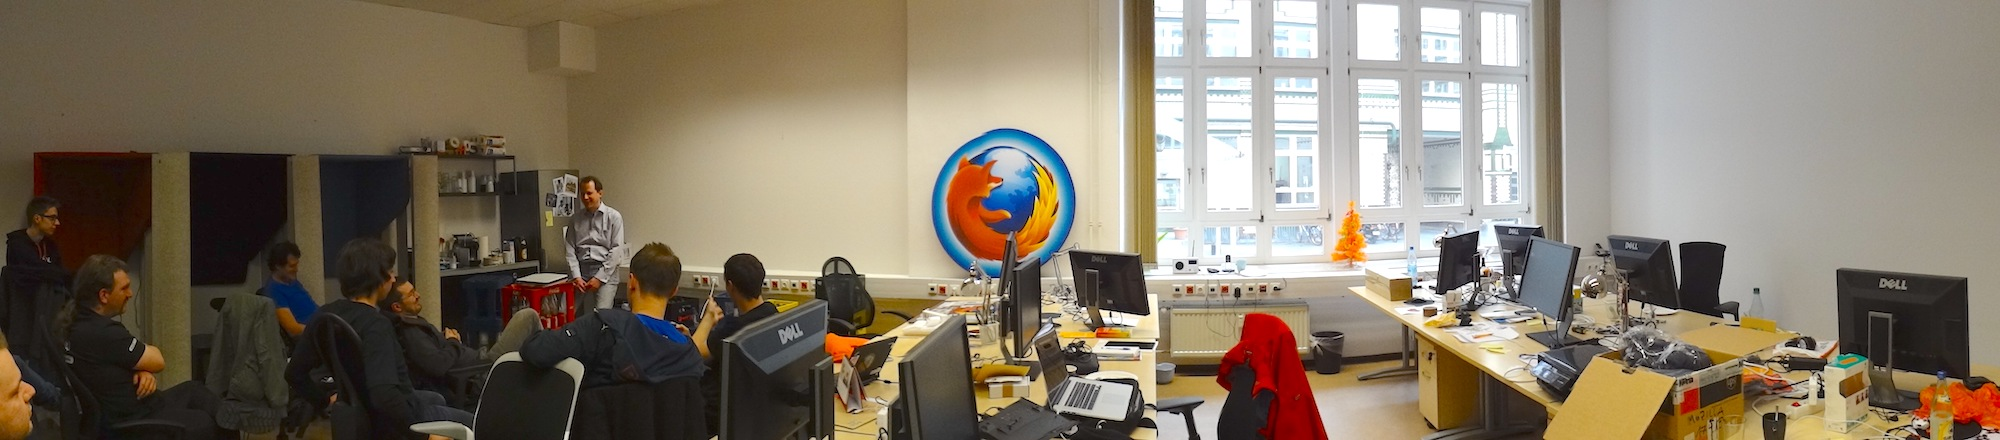 Panorama picture in the Mozilla Berlin Office. Attendees sit on chairs discussing ideas.